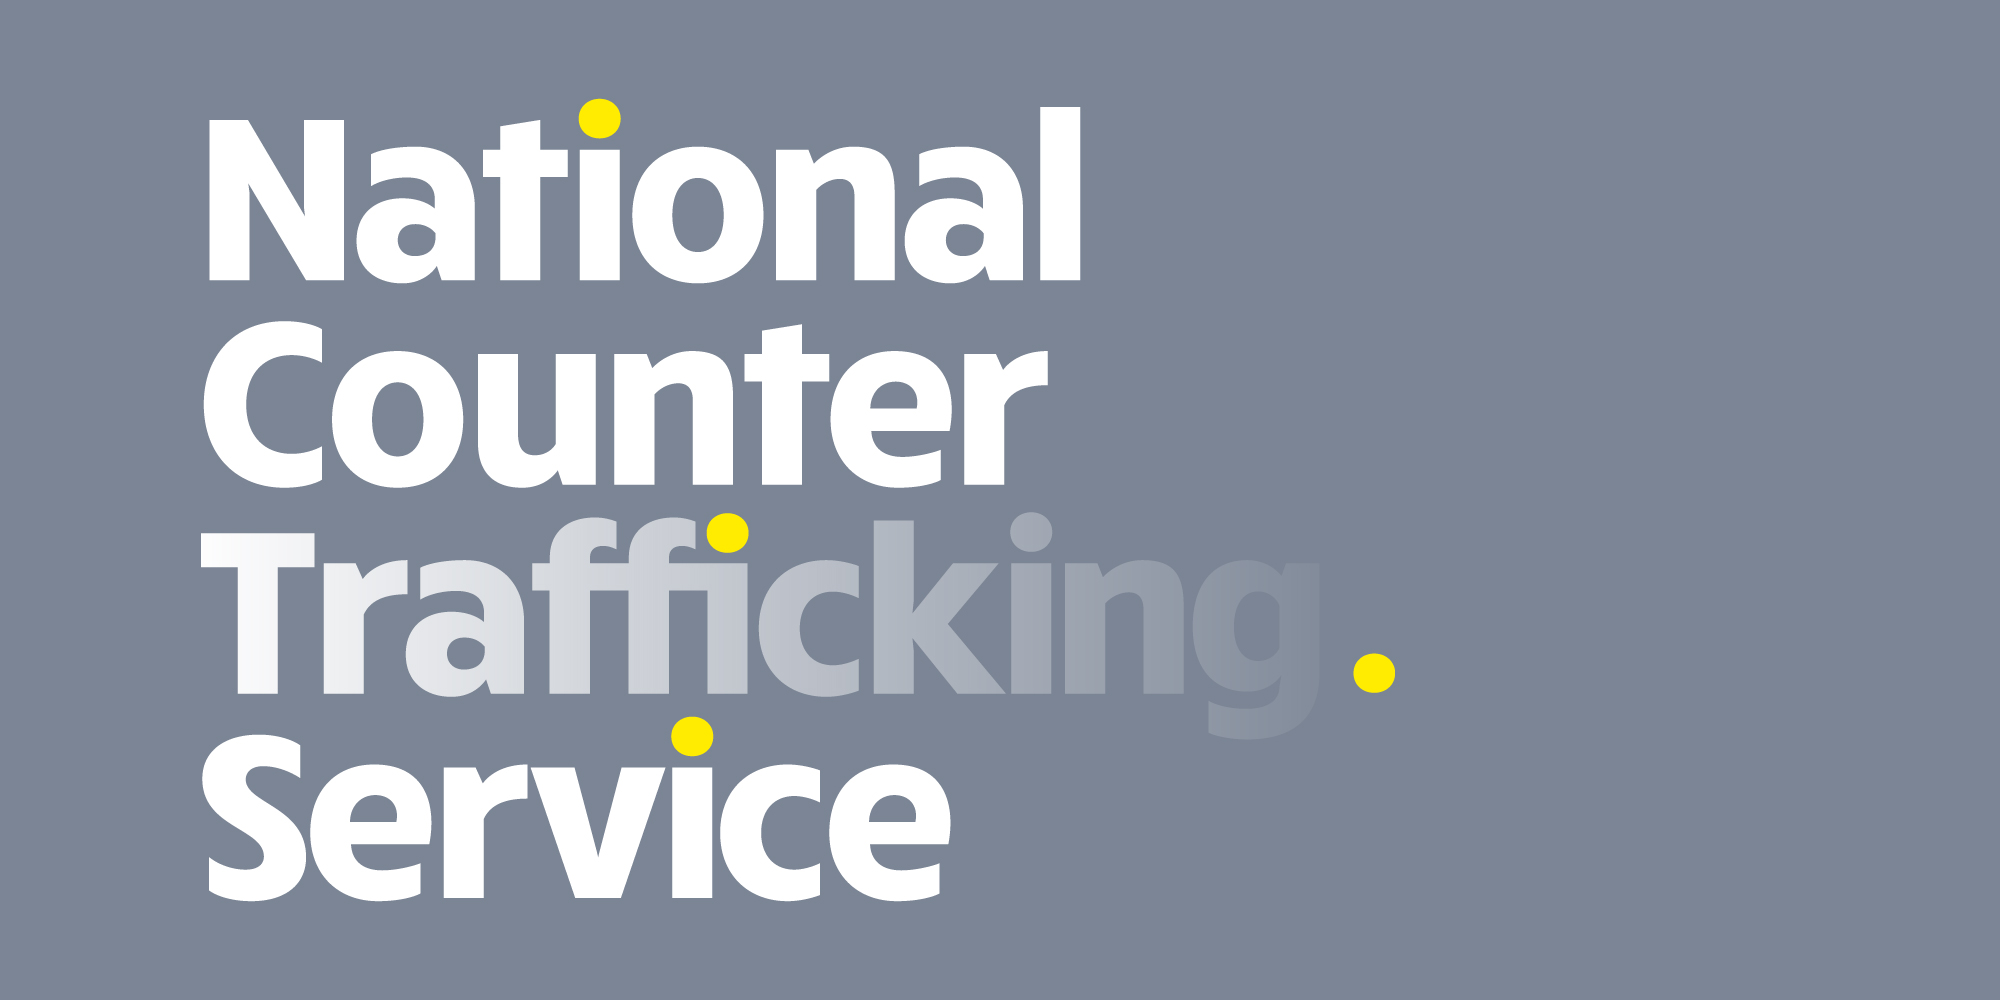 Brand identity for National Counter Trafficking Service, a subbrand of the charity Barnardo's